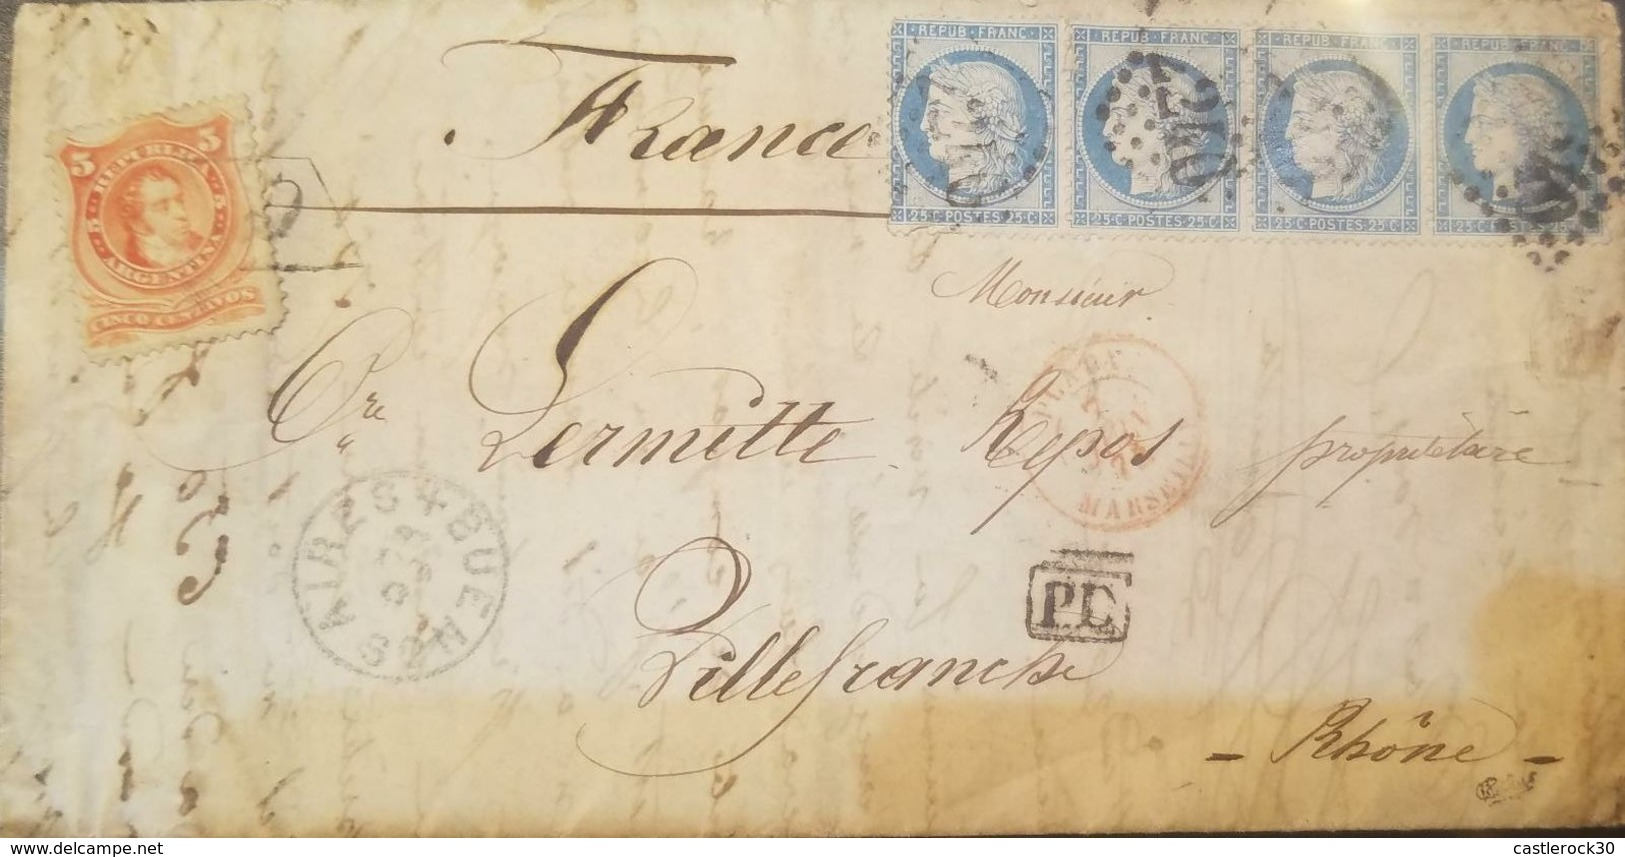 O) 1884 FRANCE, MARK PD, CERES 25 C. BLUE PERFORATE - BLOCK FOR 4, TRANSIT FOR MARSELLA, TO BUENOS AIRES WITH STAMP RECE - 1876-1898 Sage (Type II)